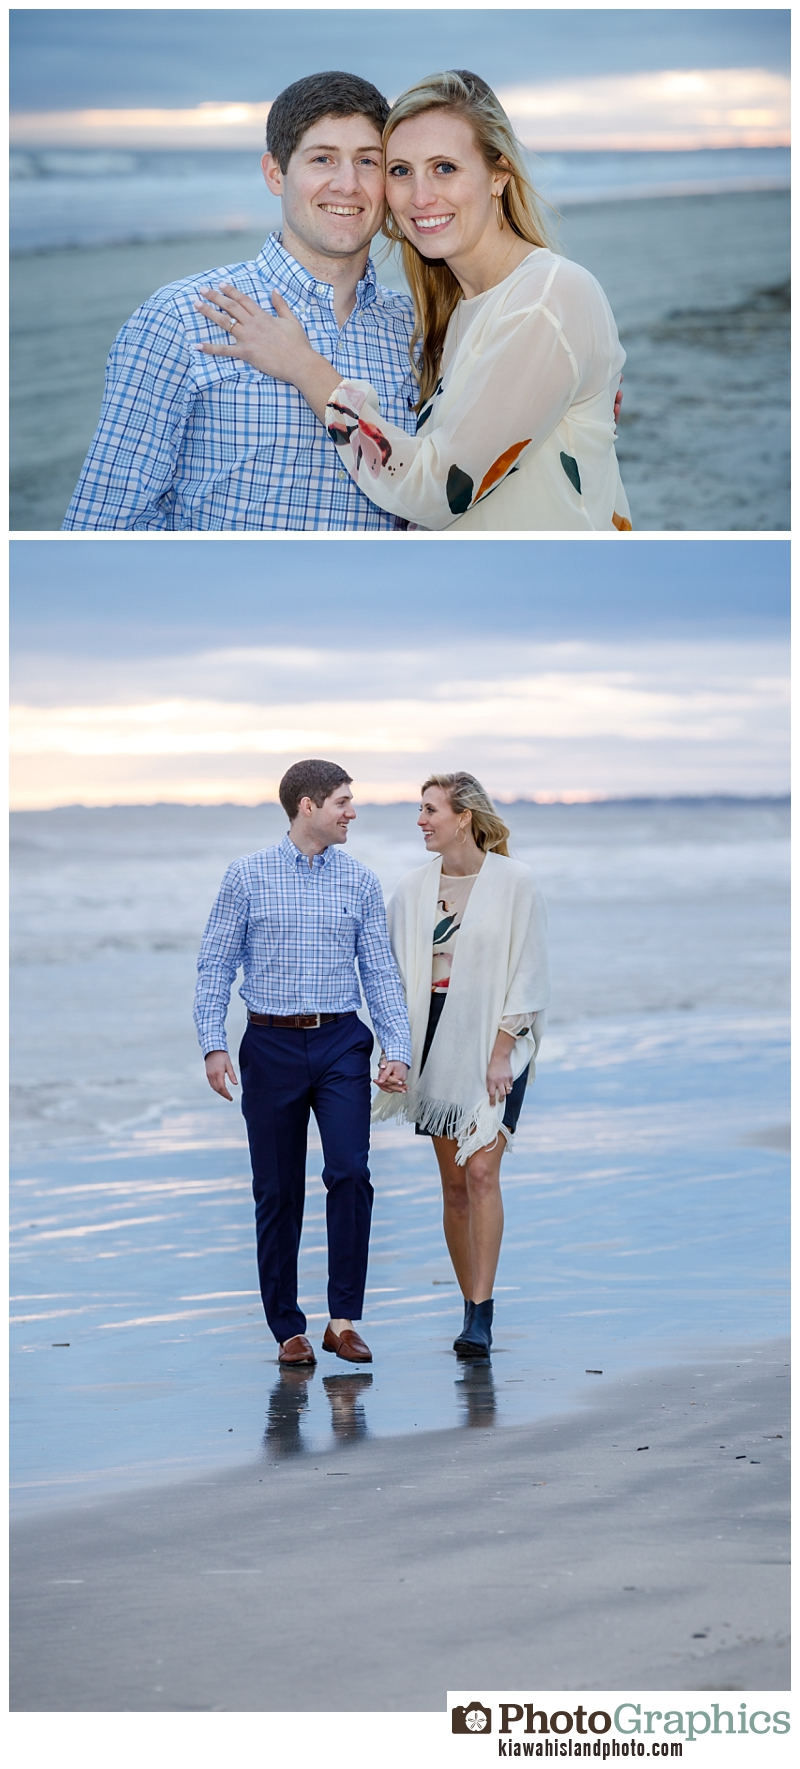 Couple walking on the beach on Kiawah Island - couple photography Charleston, South Carolina